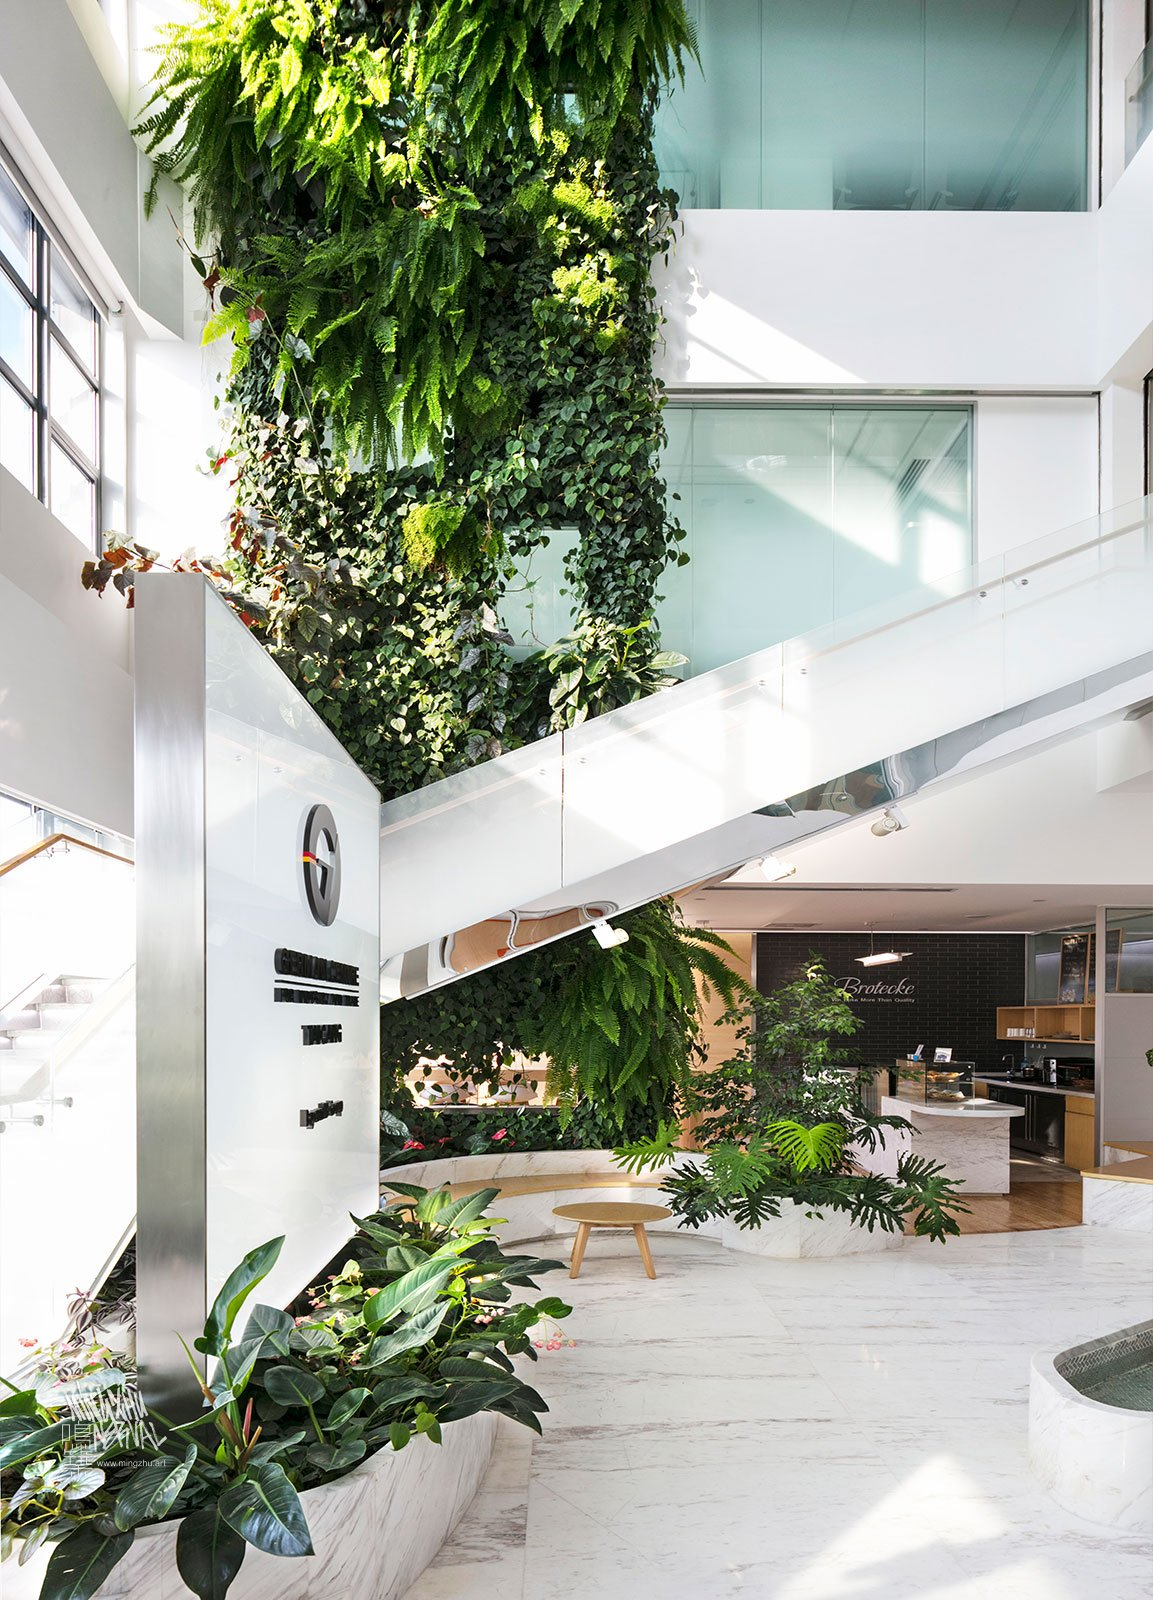 Mingzhu Nerval vertical living wall experts created the green wall nature garden at the German Center in Taicang, 2016